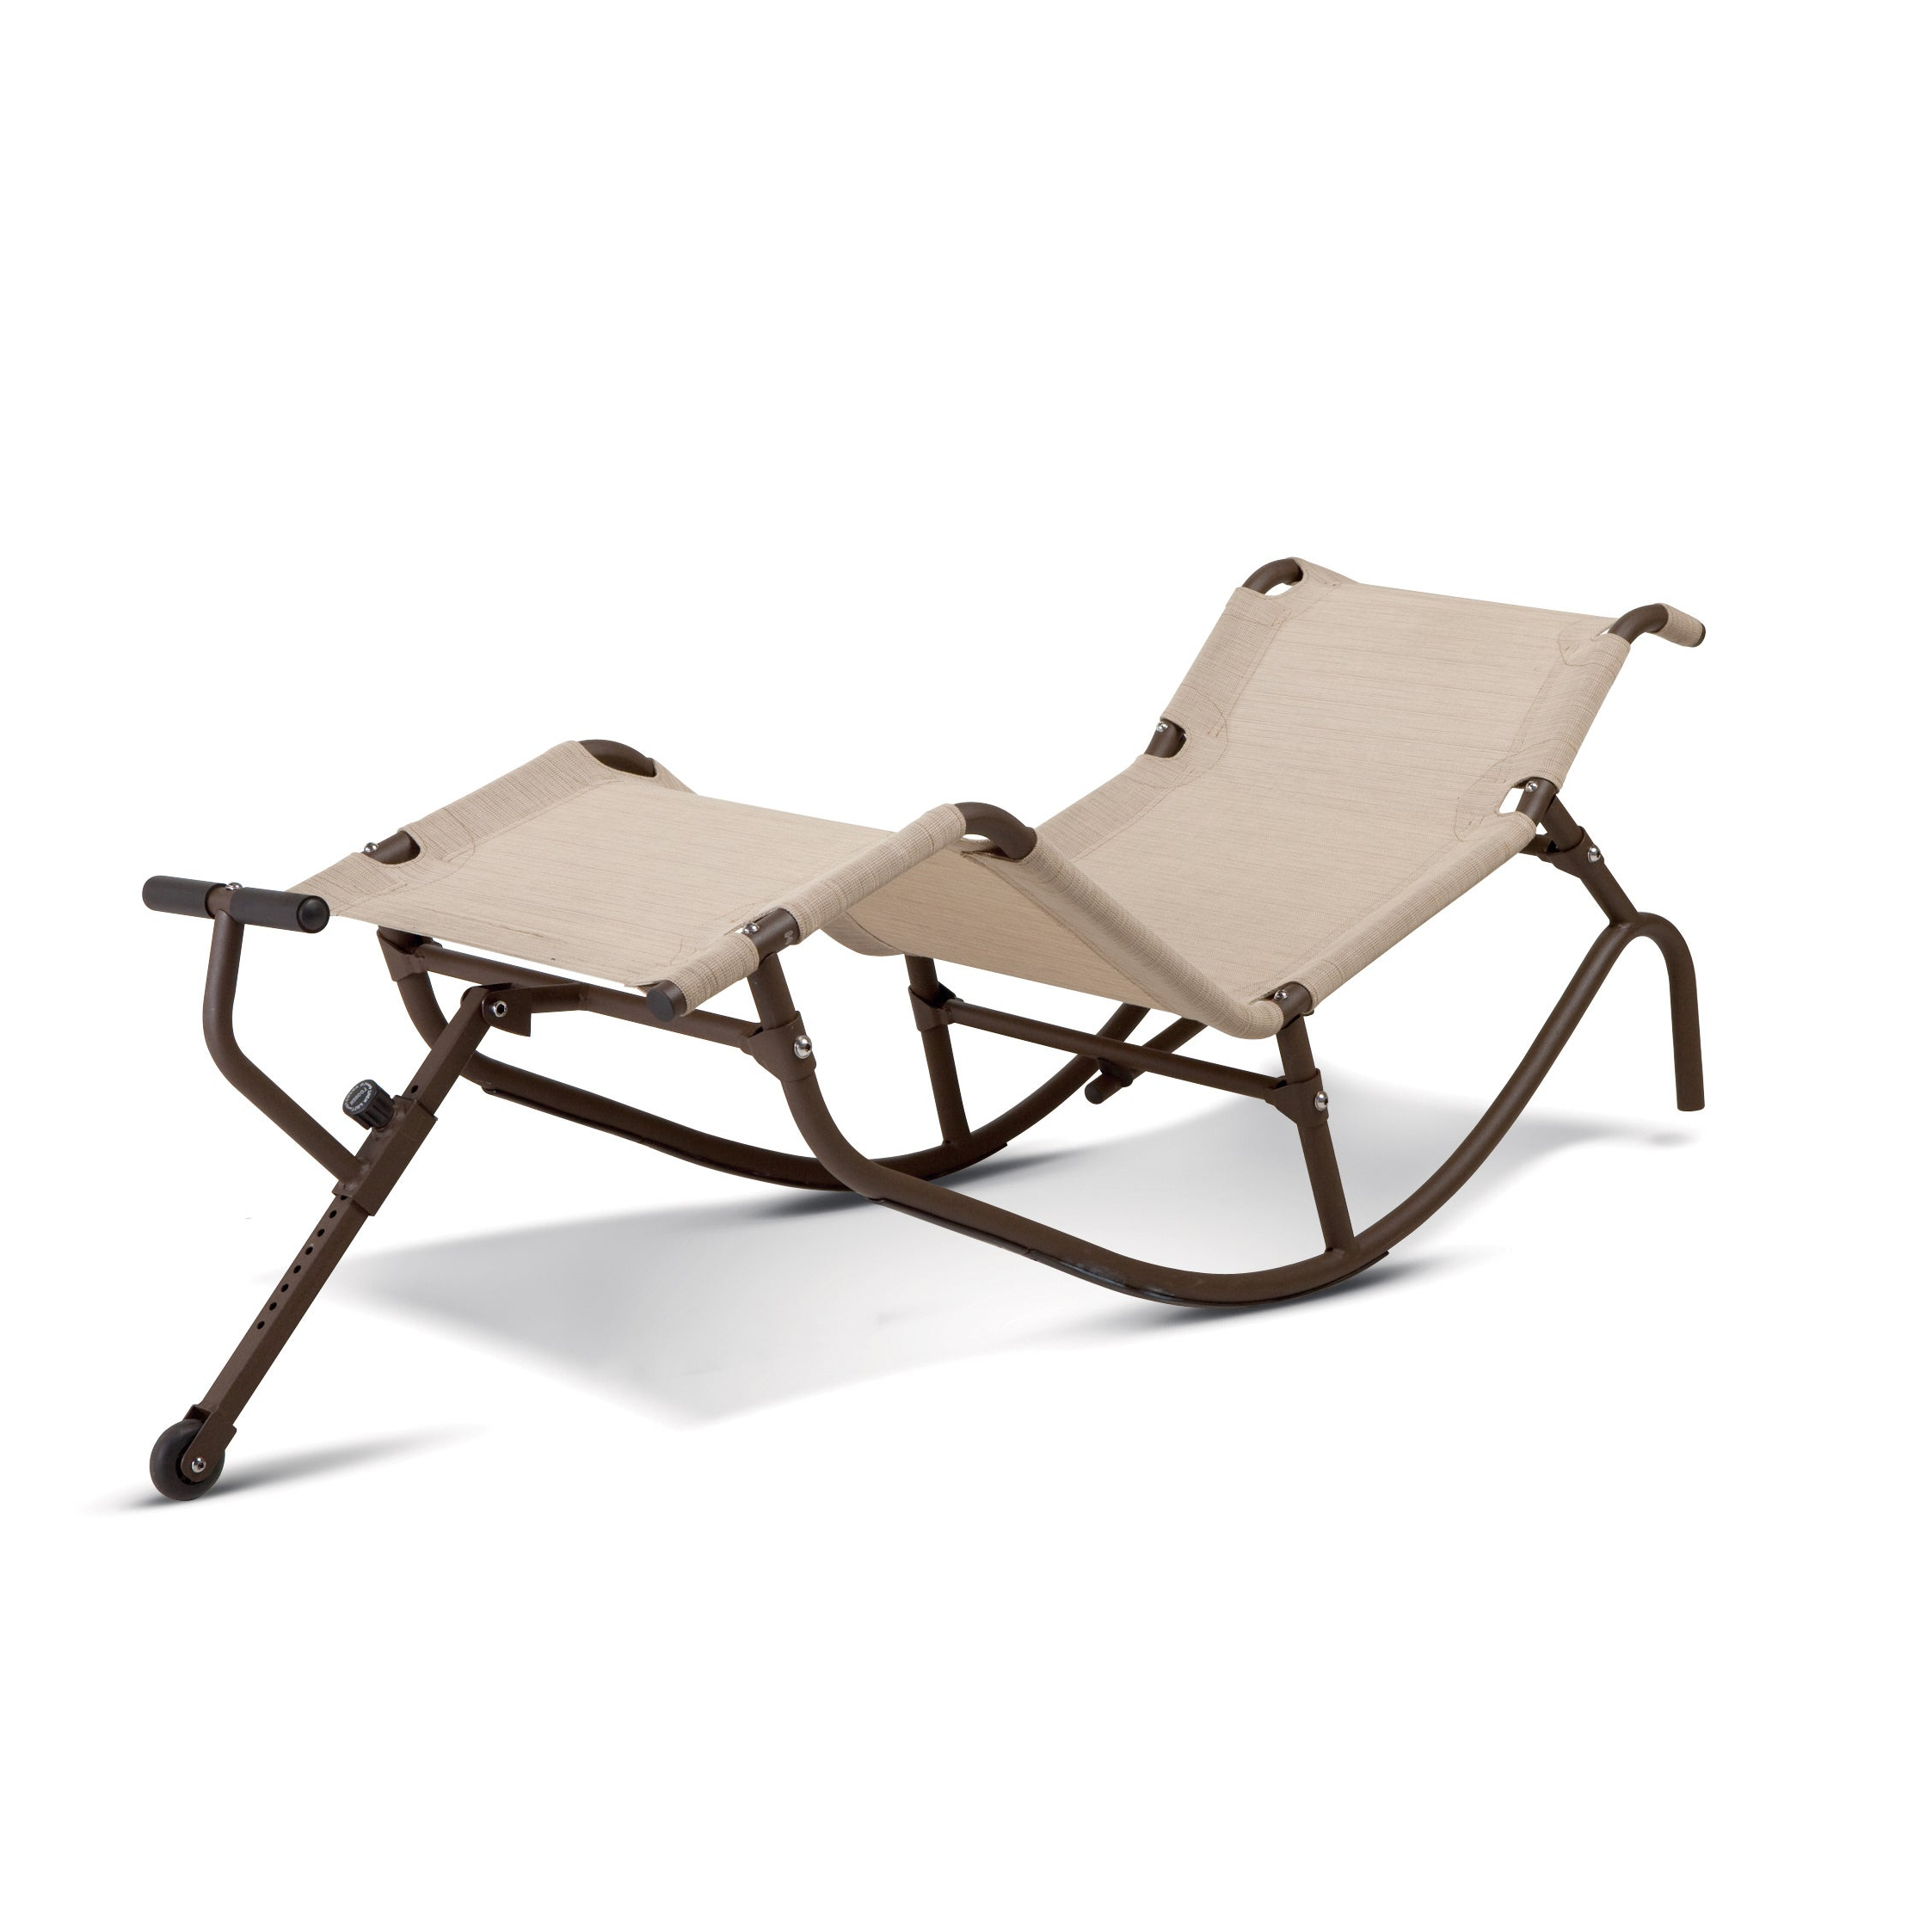 Fashionable Easy Outdoor Rocking Lounge Chair Within Easy Outdoor Rocking Lounge Chairs (View 3 of 25)